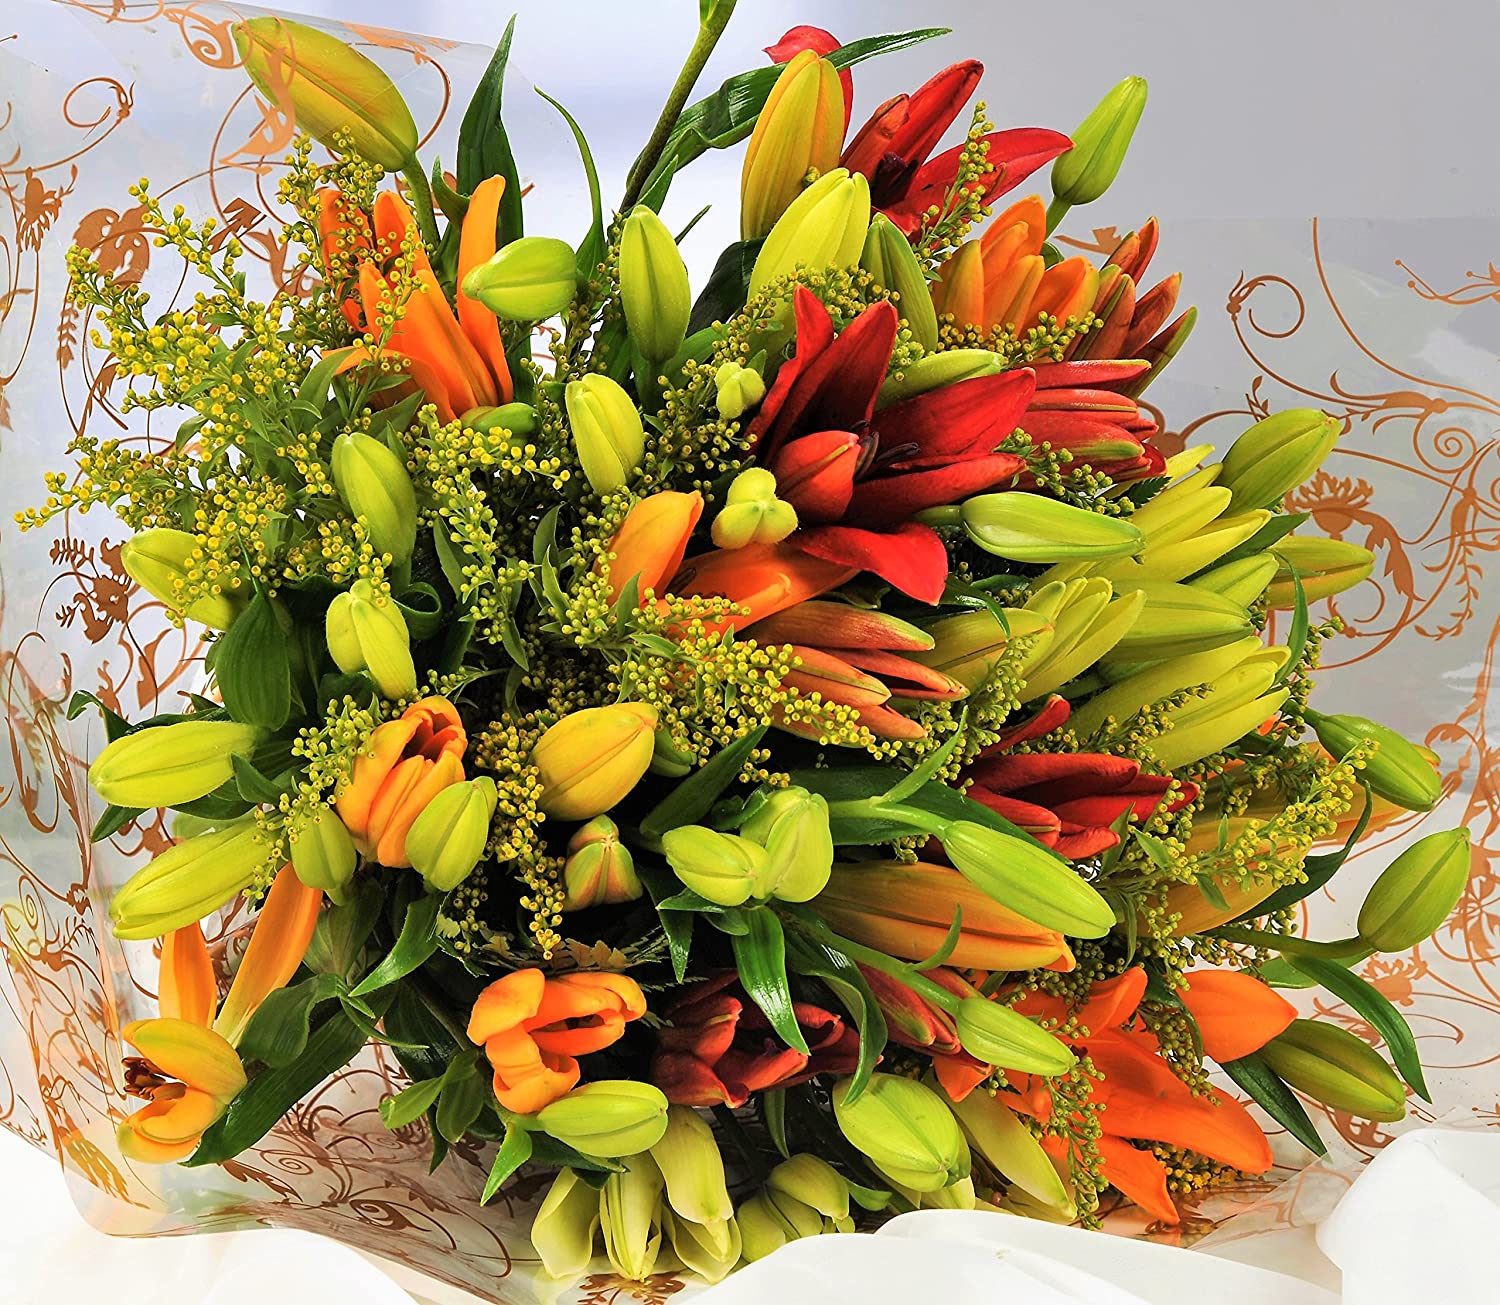 Asiatic Lily Fresh Flower Bouquet - 1hr Delivery TimeSlot - Send Flowers UK with Free Next Day Delivery 7 Days a Week - Luxury Lilies Delivered Gift Wrapped with Your Personal Card Message Homeland Florists